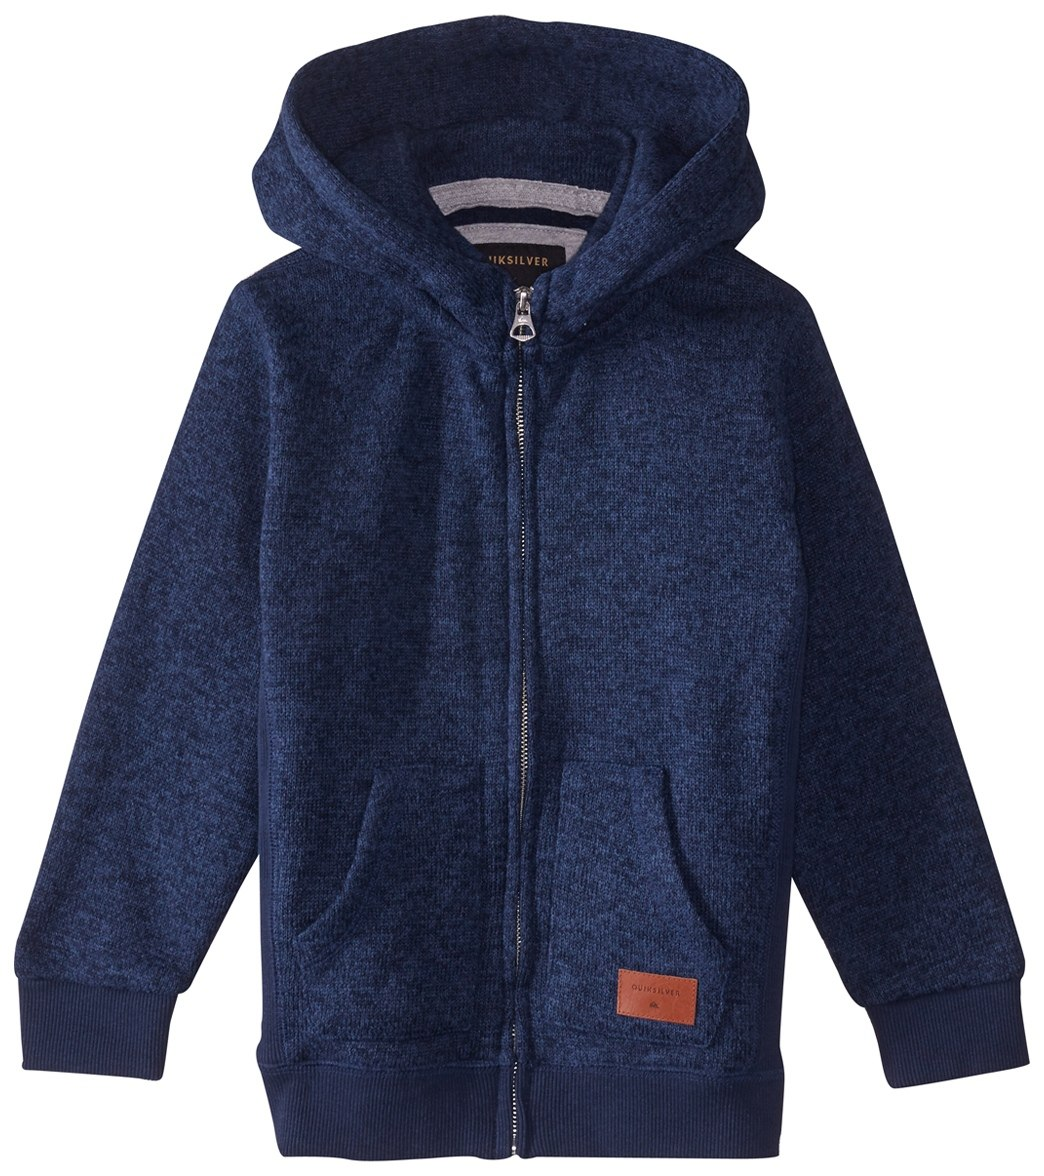 brand new 9fed5 32a83 Quiksilver Boys  Keller Brushed Fleece Zip Hoodie (Big Kid) at  SwimOutlet.com - Free Shipping